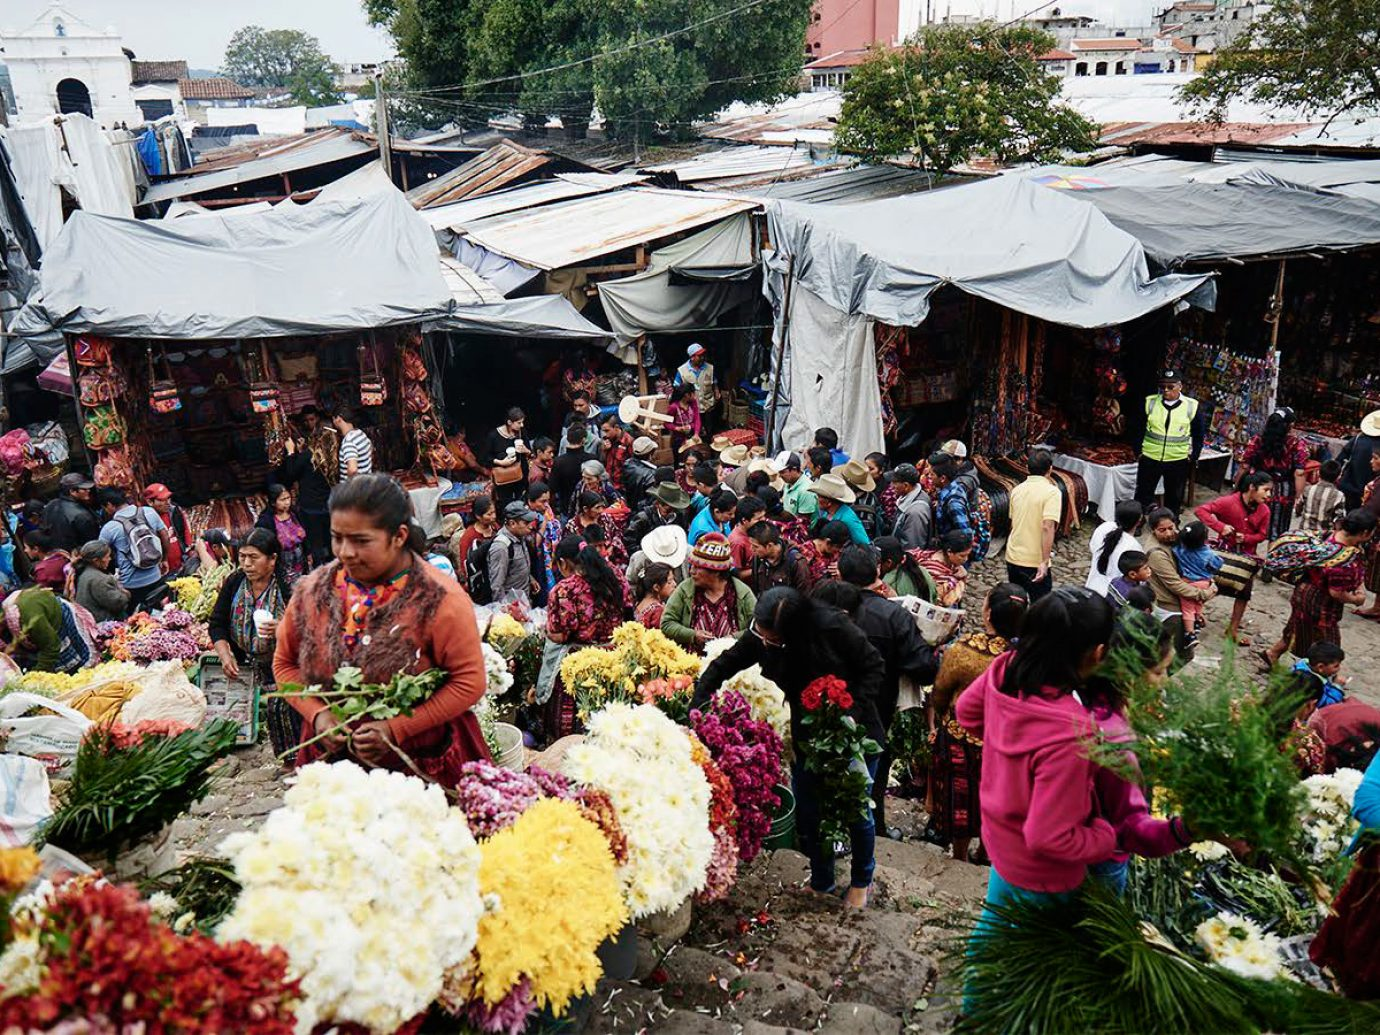 Trip Ideas outdoor marketplace person people market crowd public space City vendor human settlement flower scene floristry Shop several